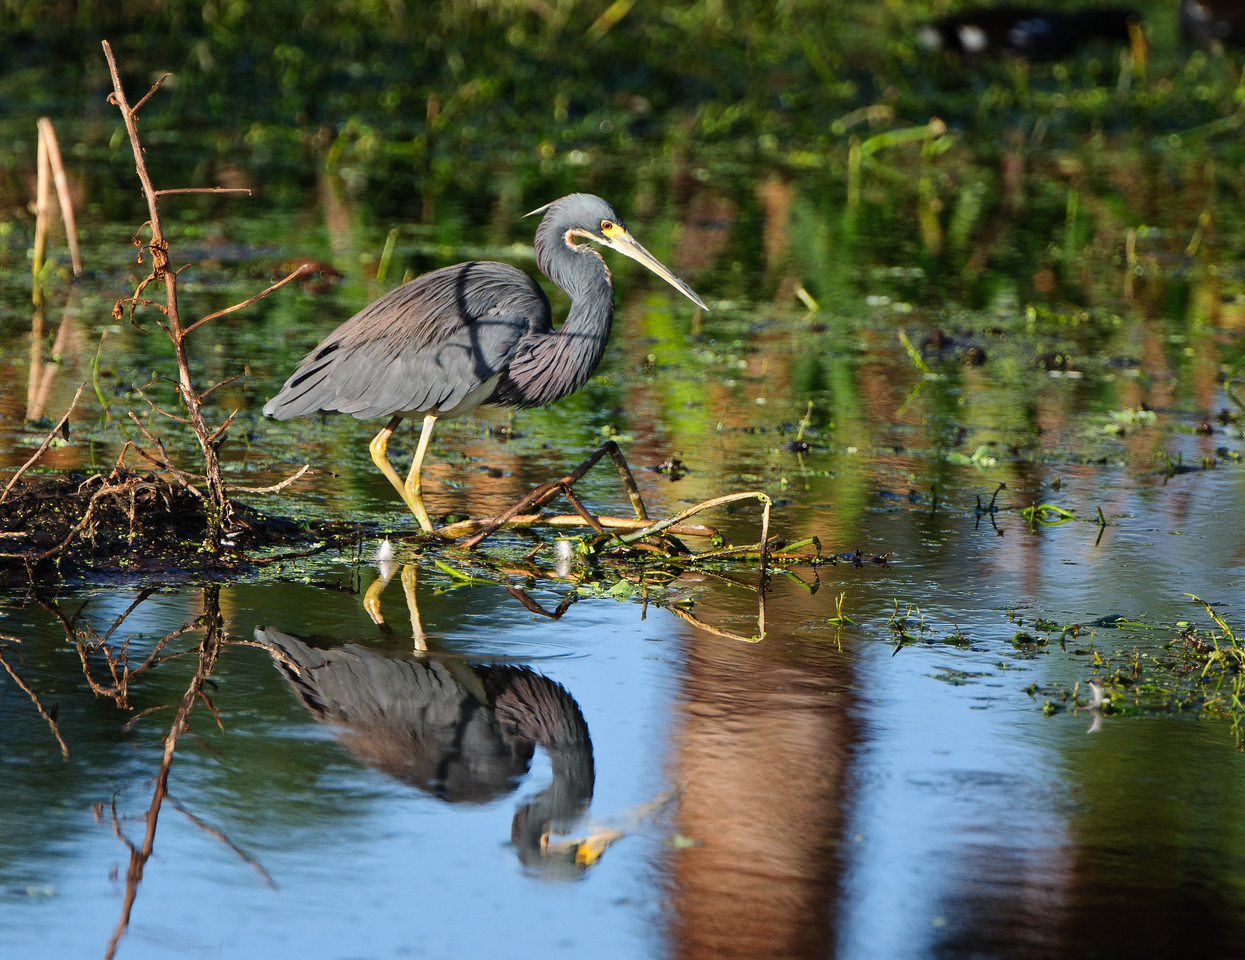 Tricolor Heron admires his reflection in the marsh pond.